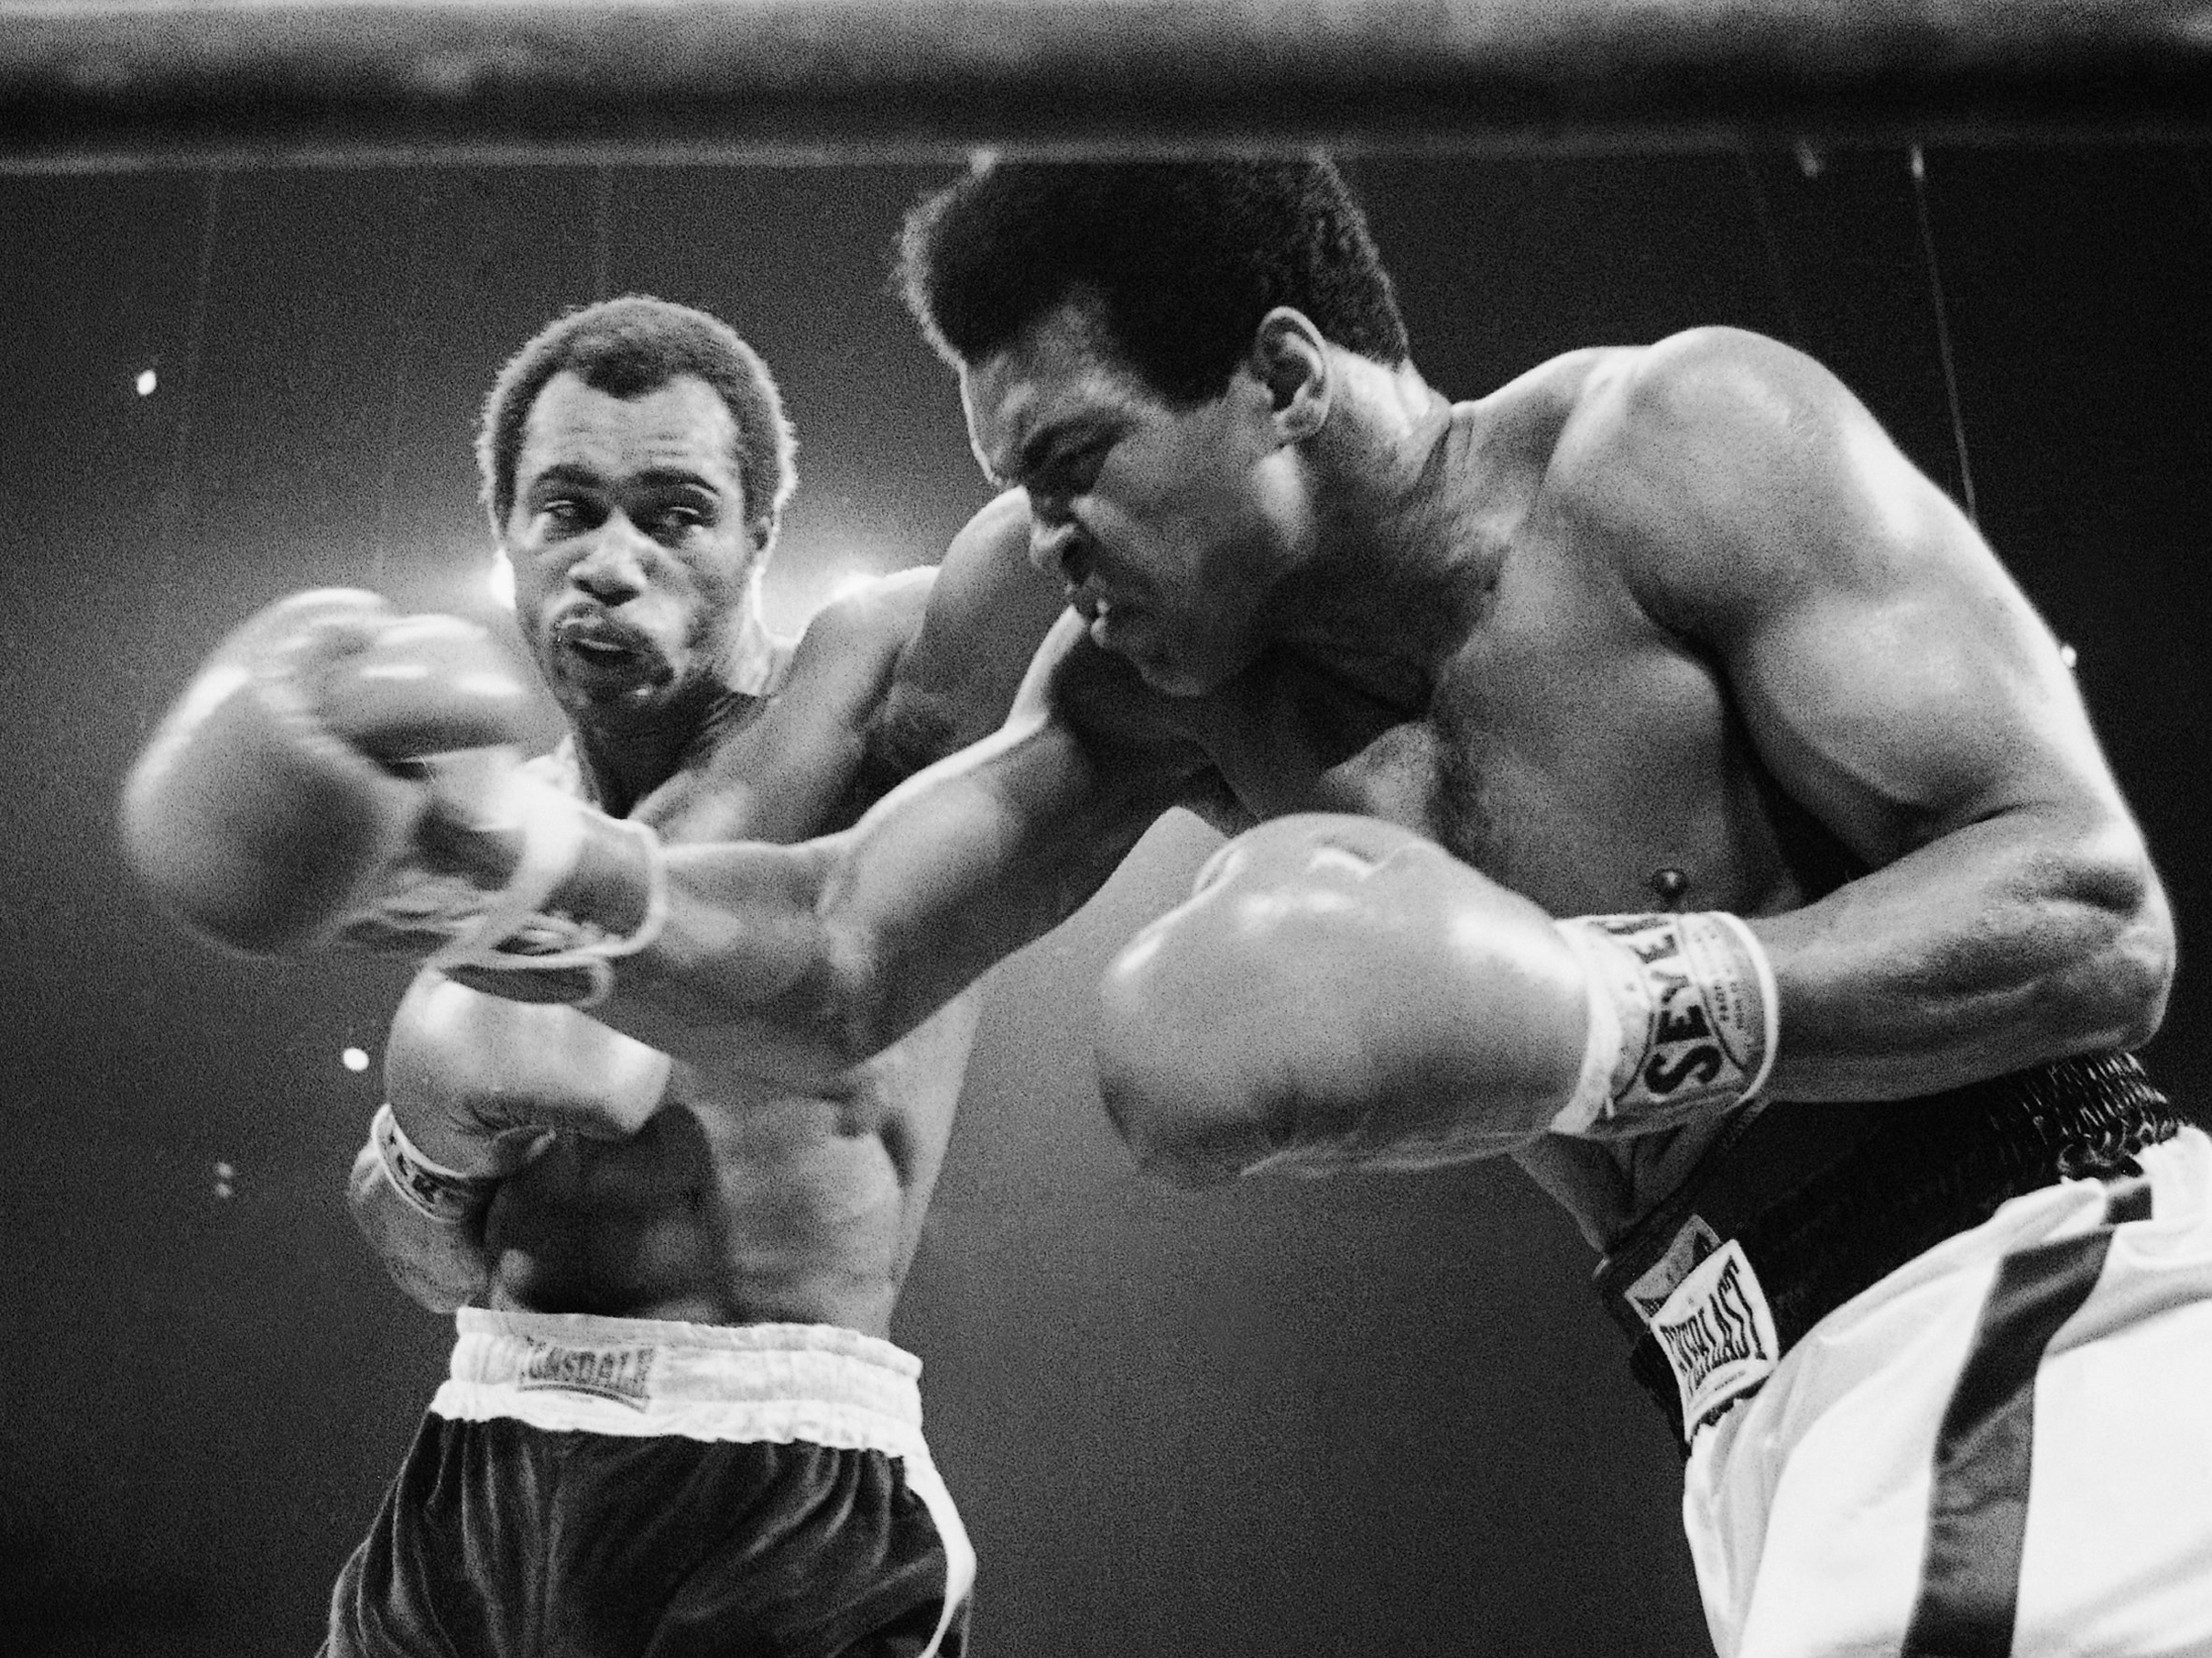 Ken Norton Sr., Heavyweight Fighter Who Beat Ali, Dies